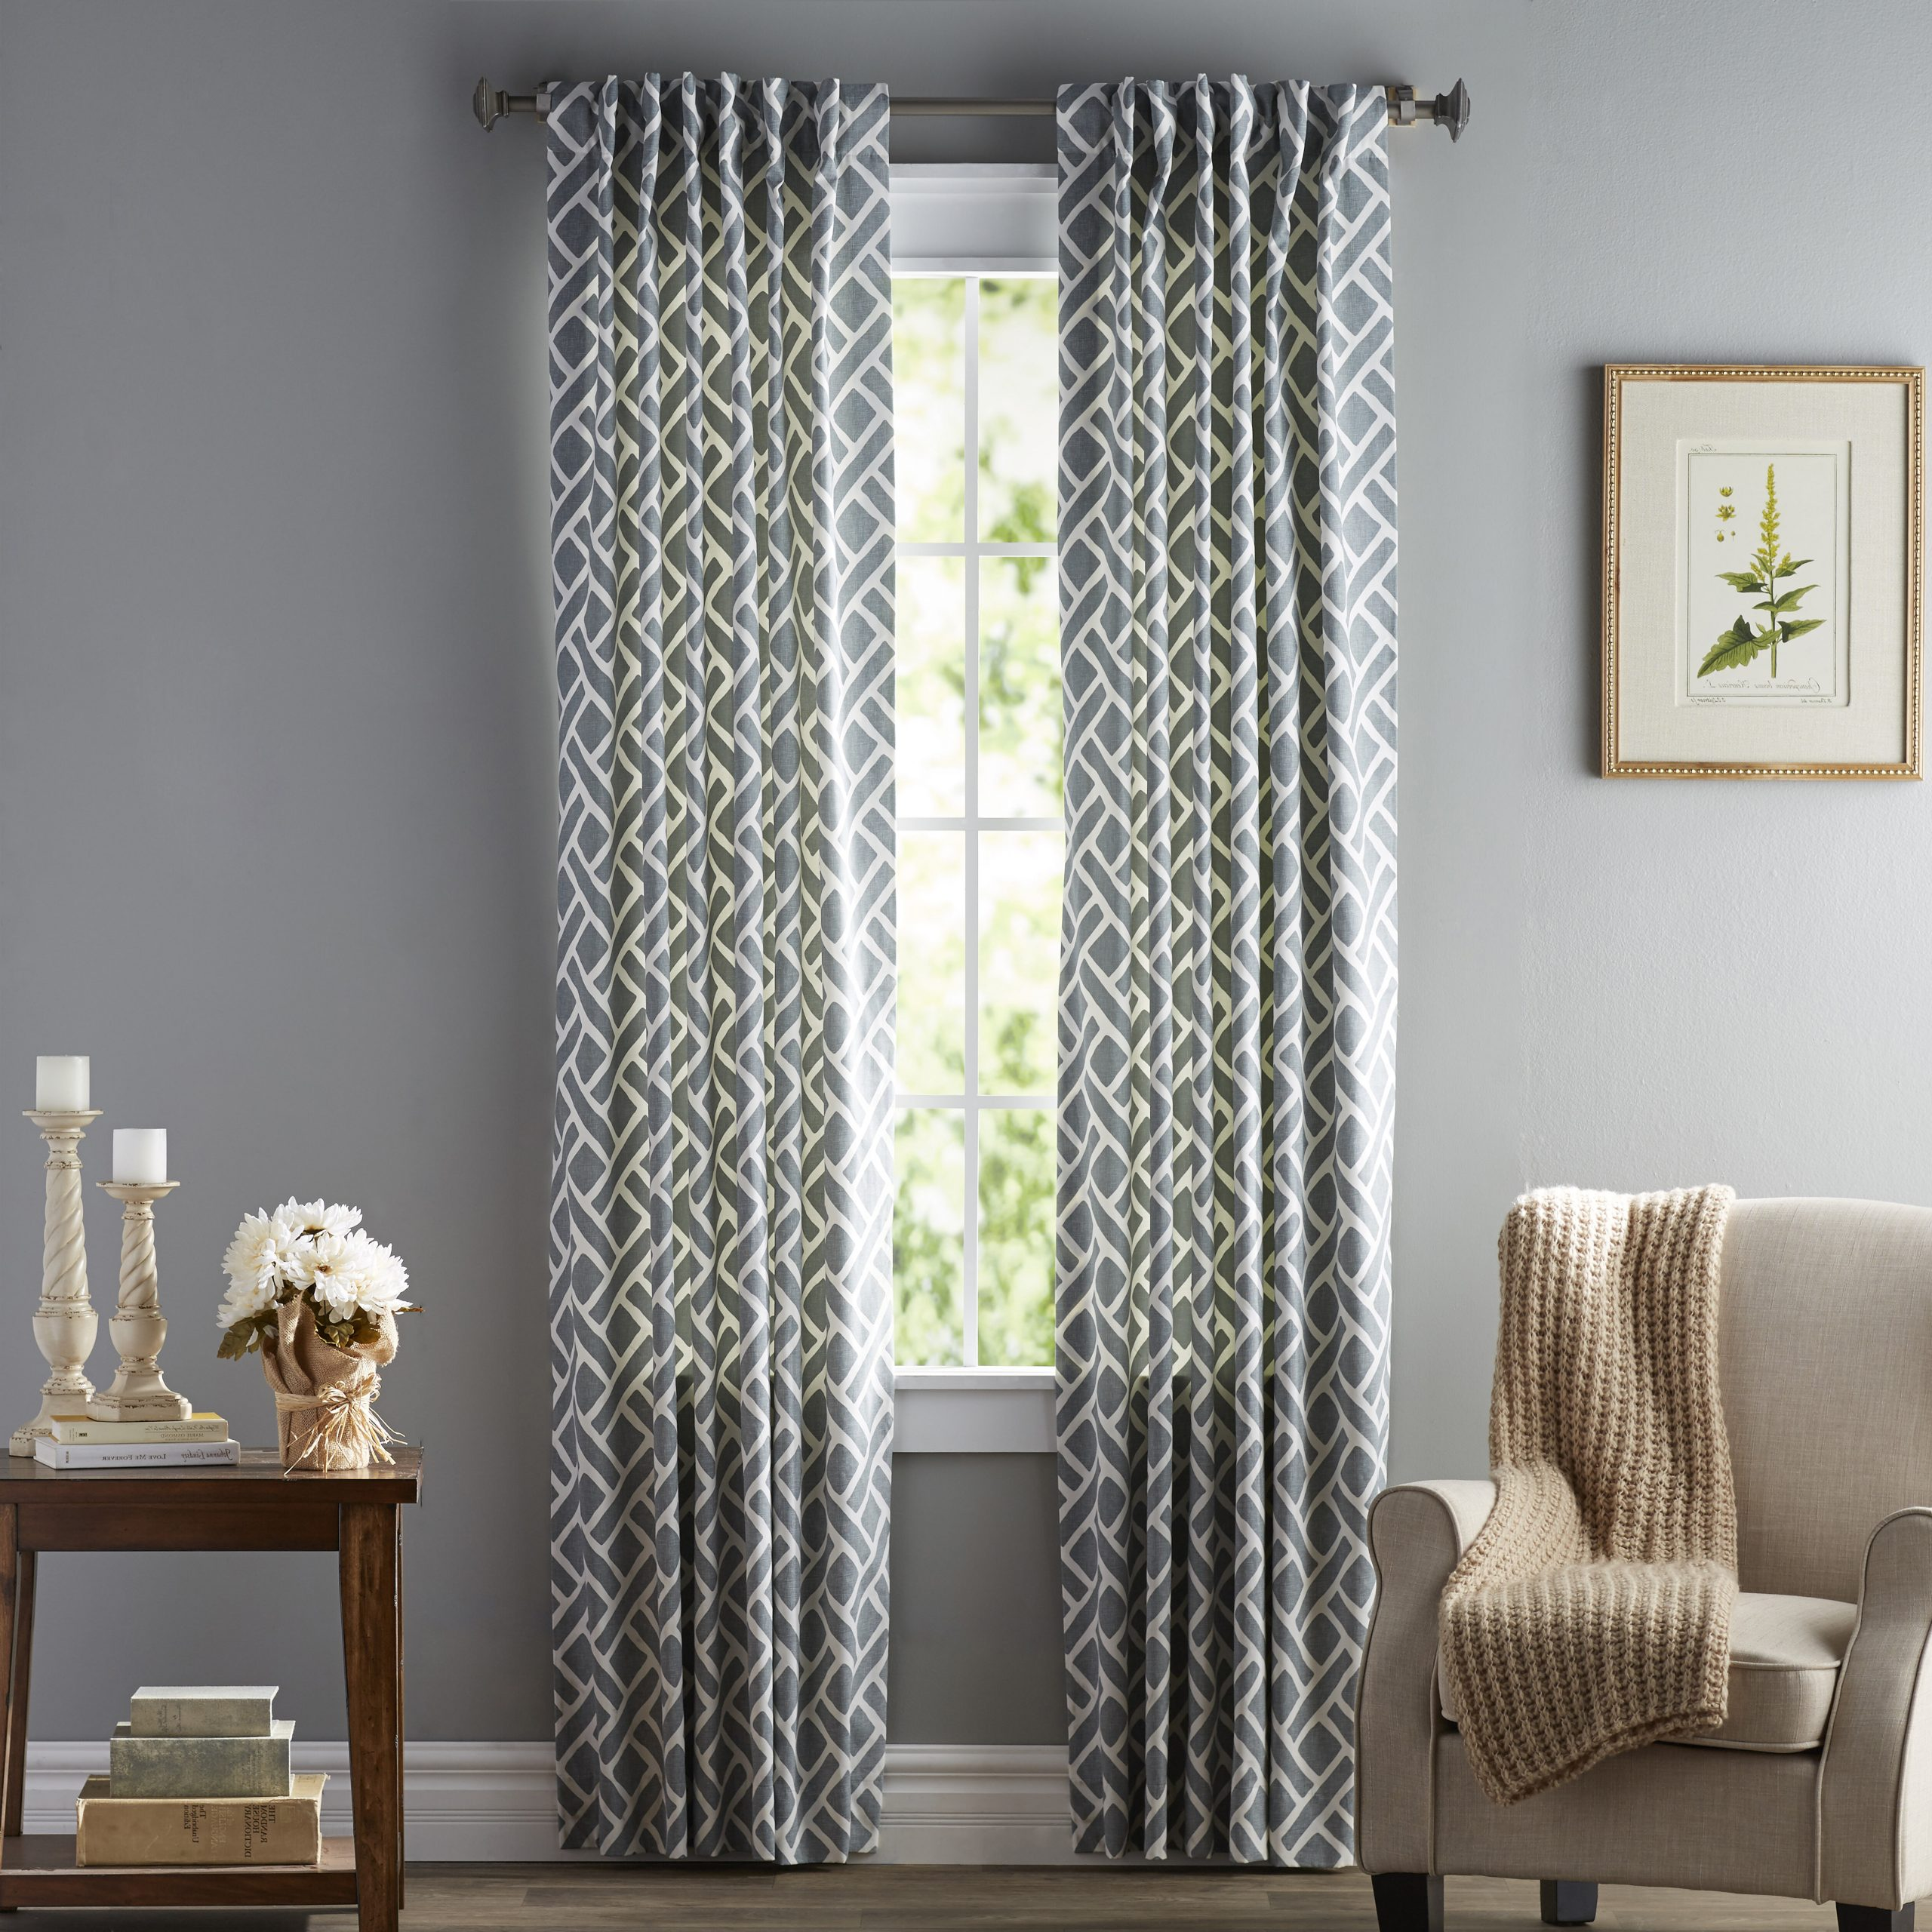 Luxury Collection Summit Sheer Curtain Panel Pairs With Preferred Langley Street Berumen Geometric Room Darkening Rod Pocket (Gallery 12 of 20)